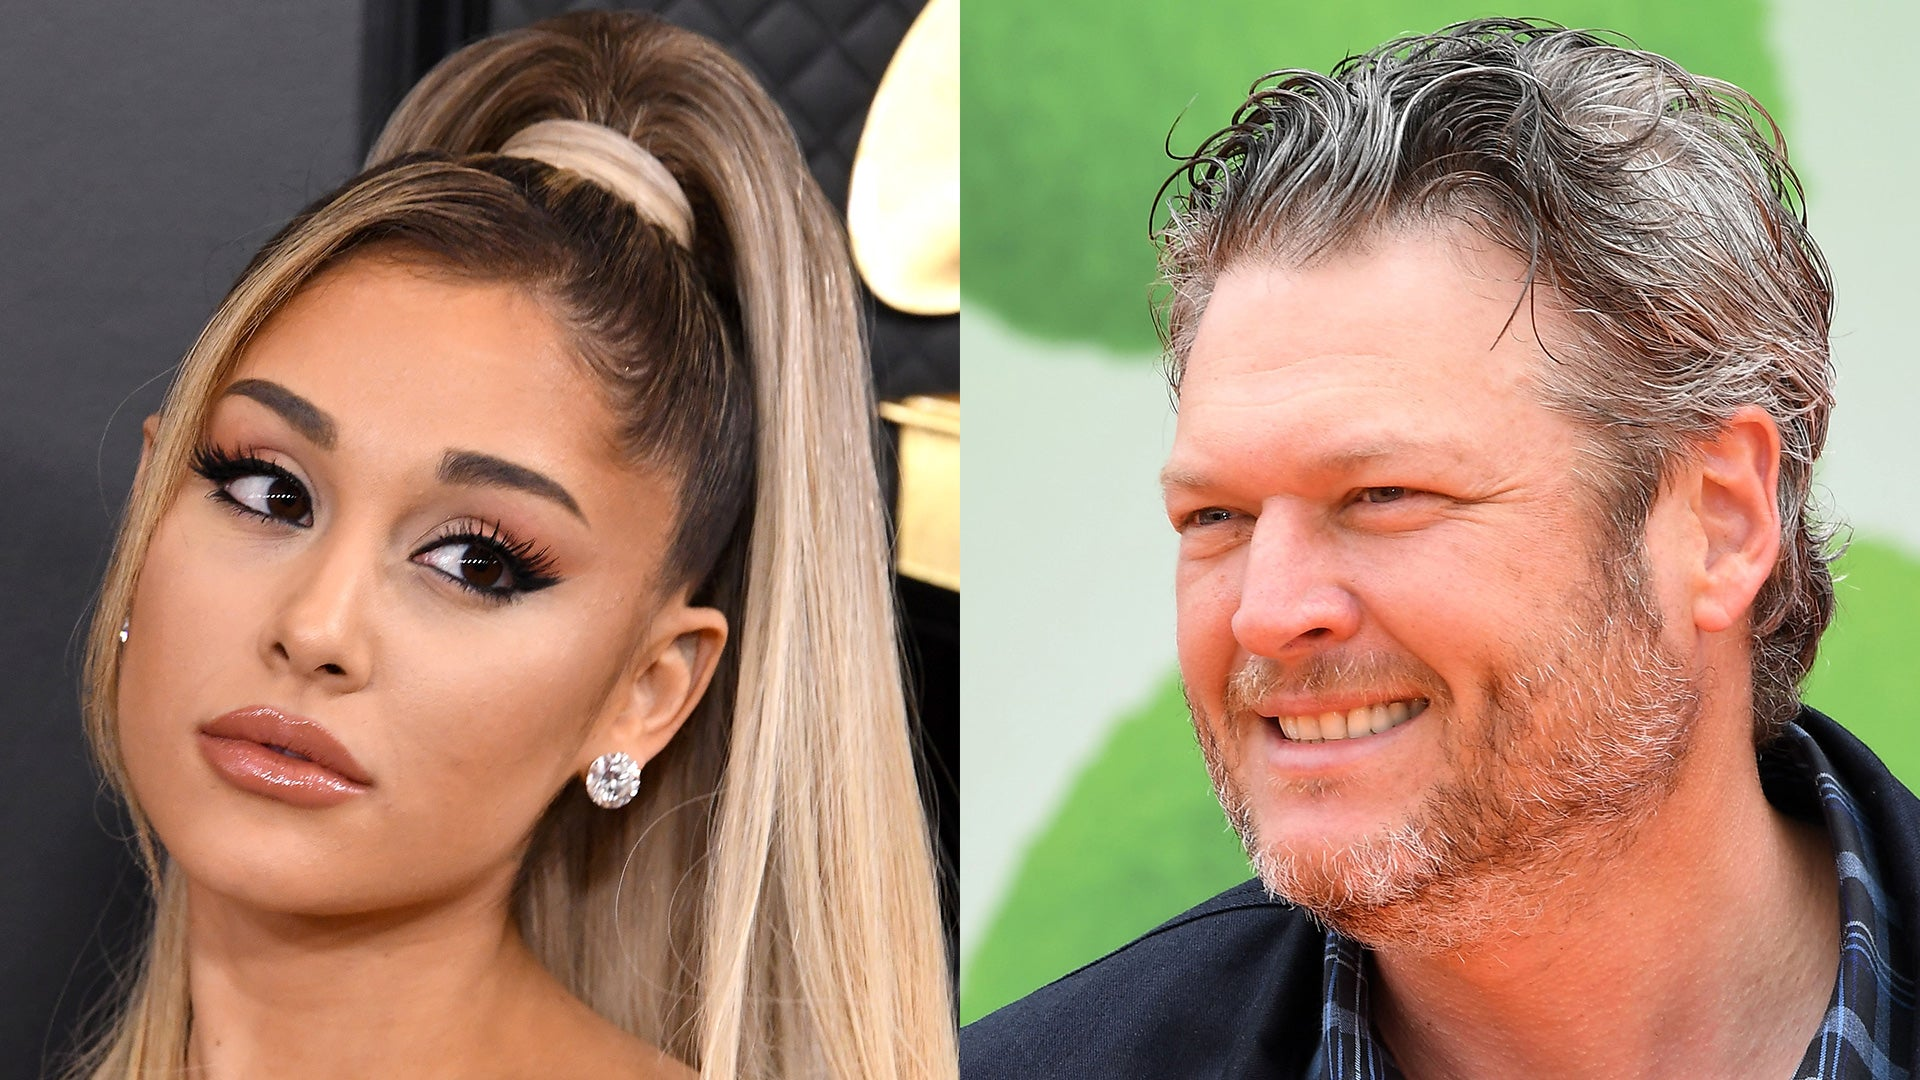 Blake Shelton Reacts to Rumors Ariana Grande Is Replacing Him on 'The Voice'